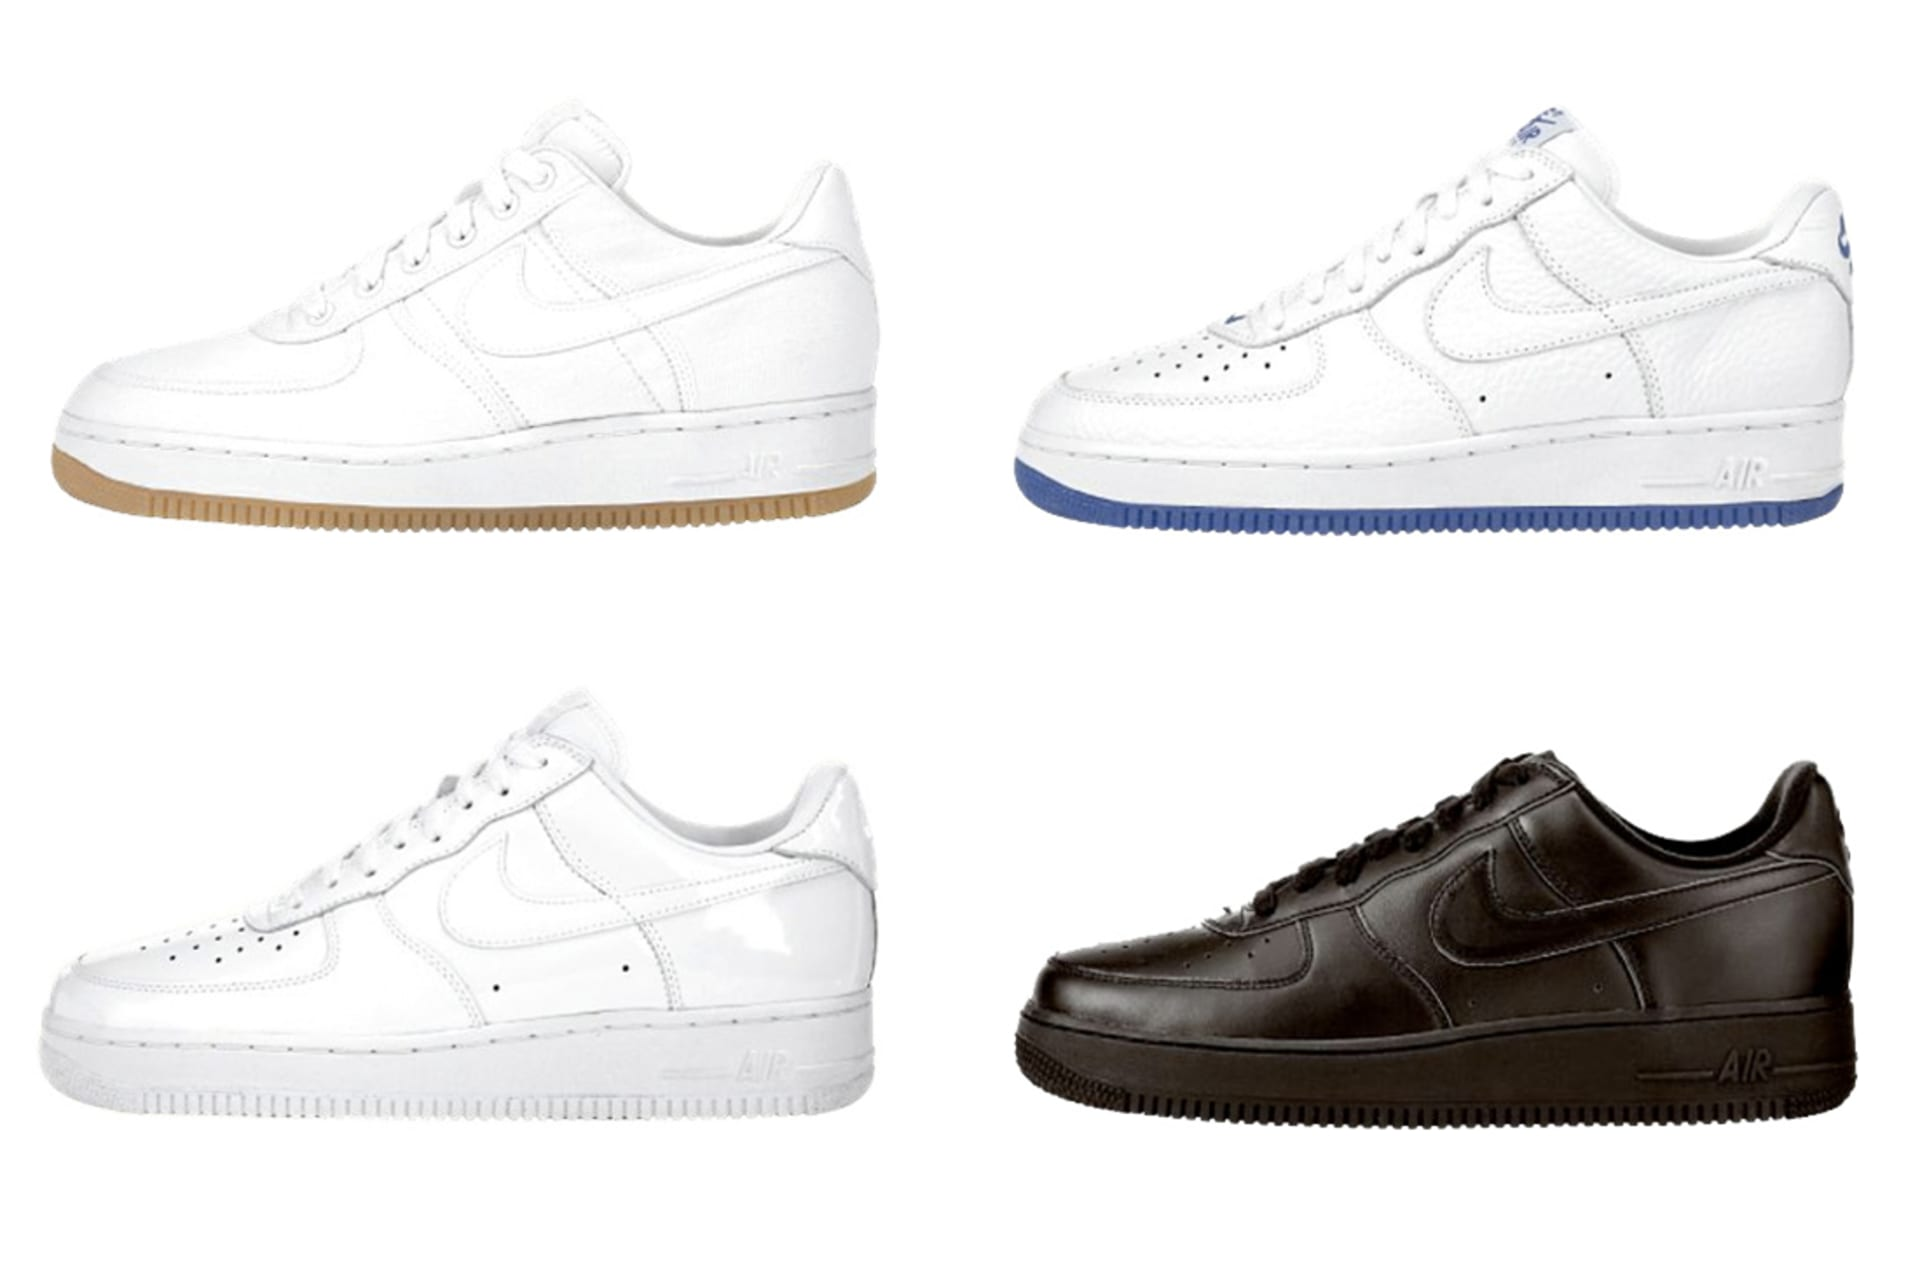 new arrival a4a46 d31a1 1996 Nike Air Force 1